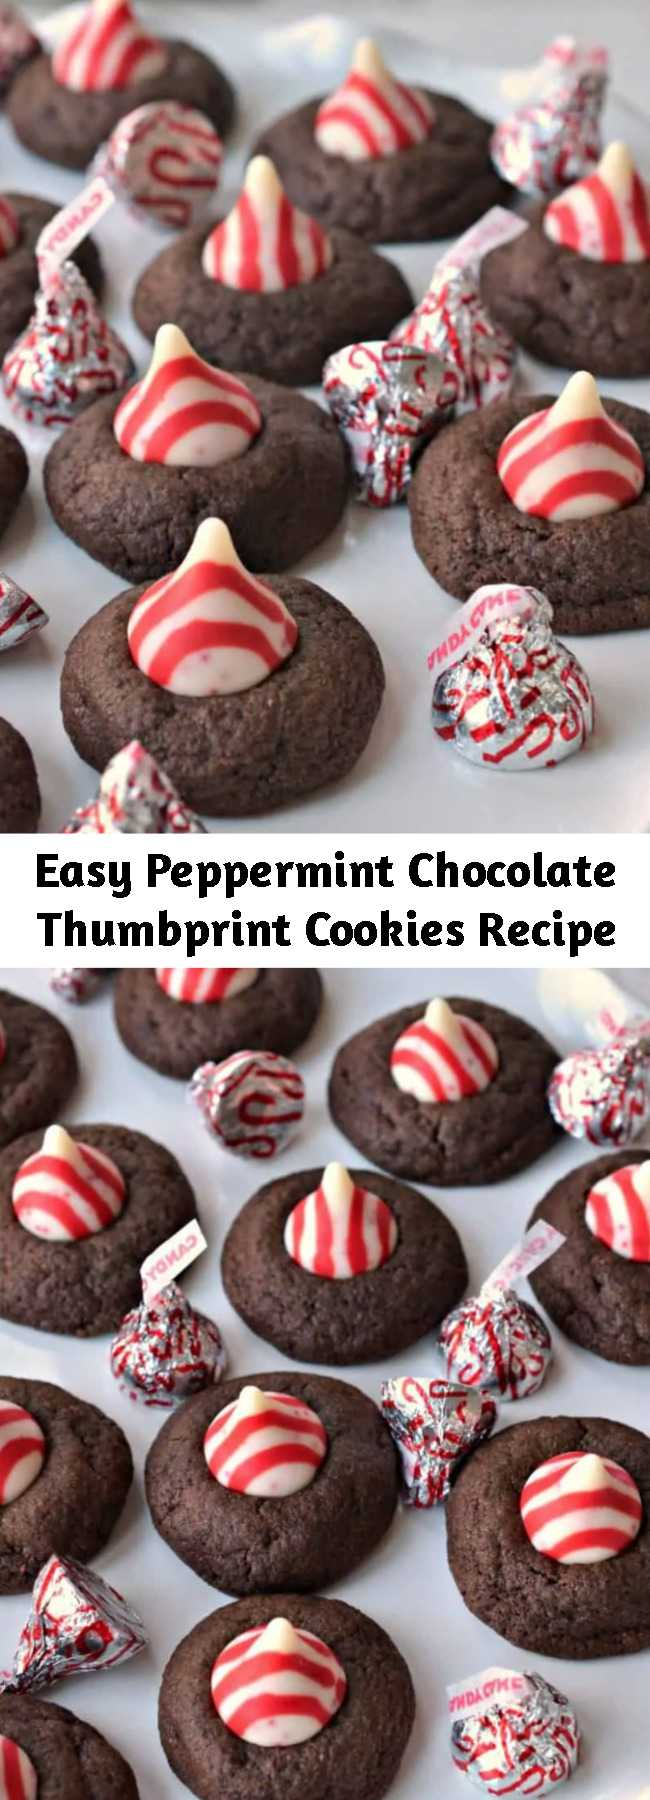 Easy Peppermint Chocolate Thumbprint Cookies Recipe - Easy Peppermint Chocolate Thumbprint Cookies are delicious buttery chocolate treats that are baked to perfection and topped with a colorful red and white chocolate peppermint kiss.